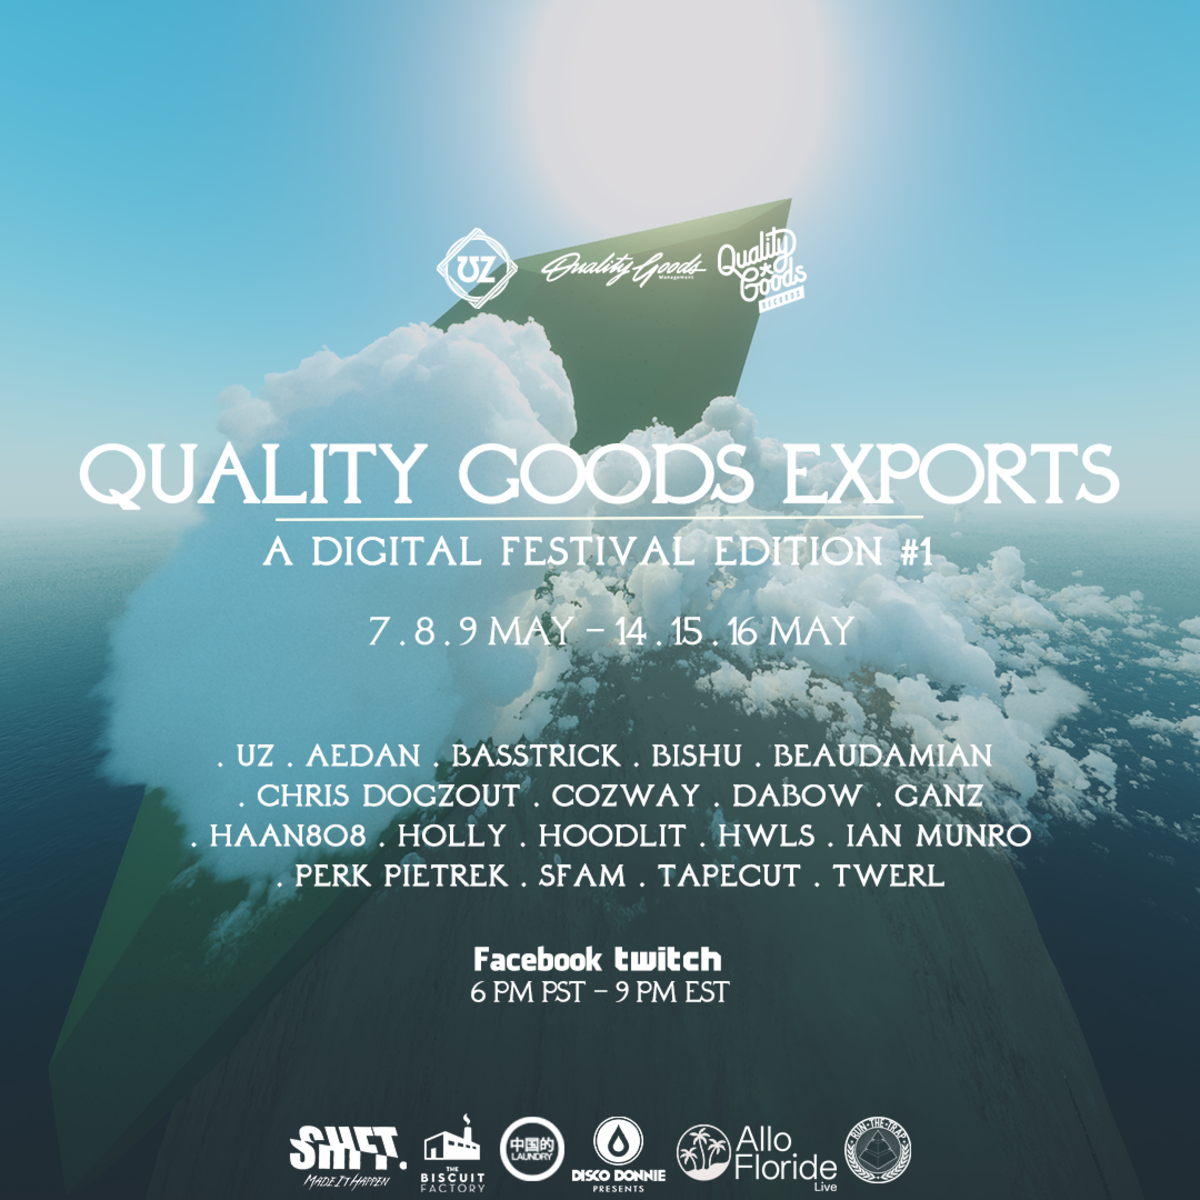 Quality Goods Exports: A Digital Festival